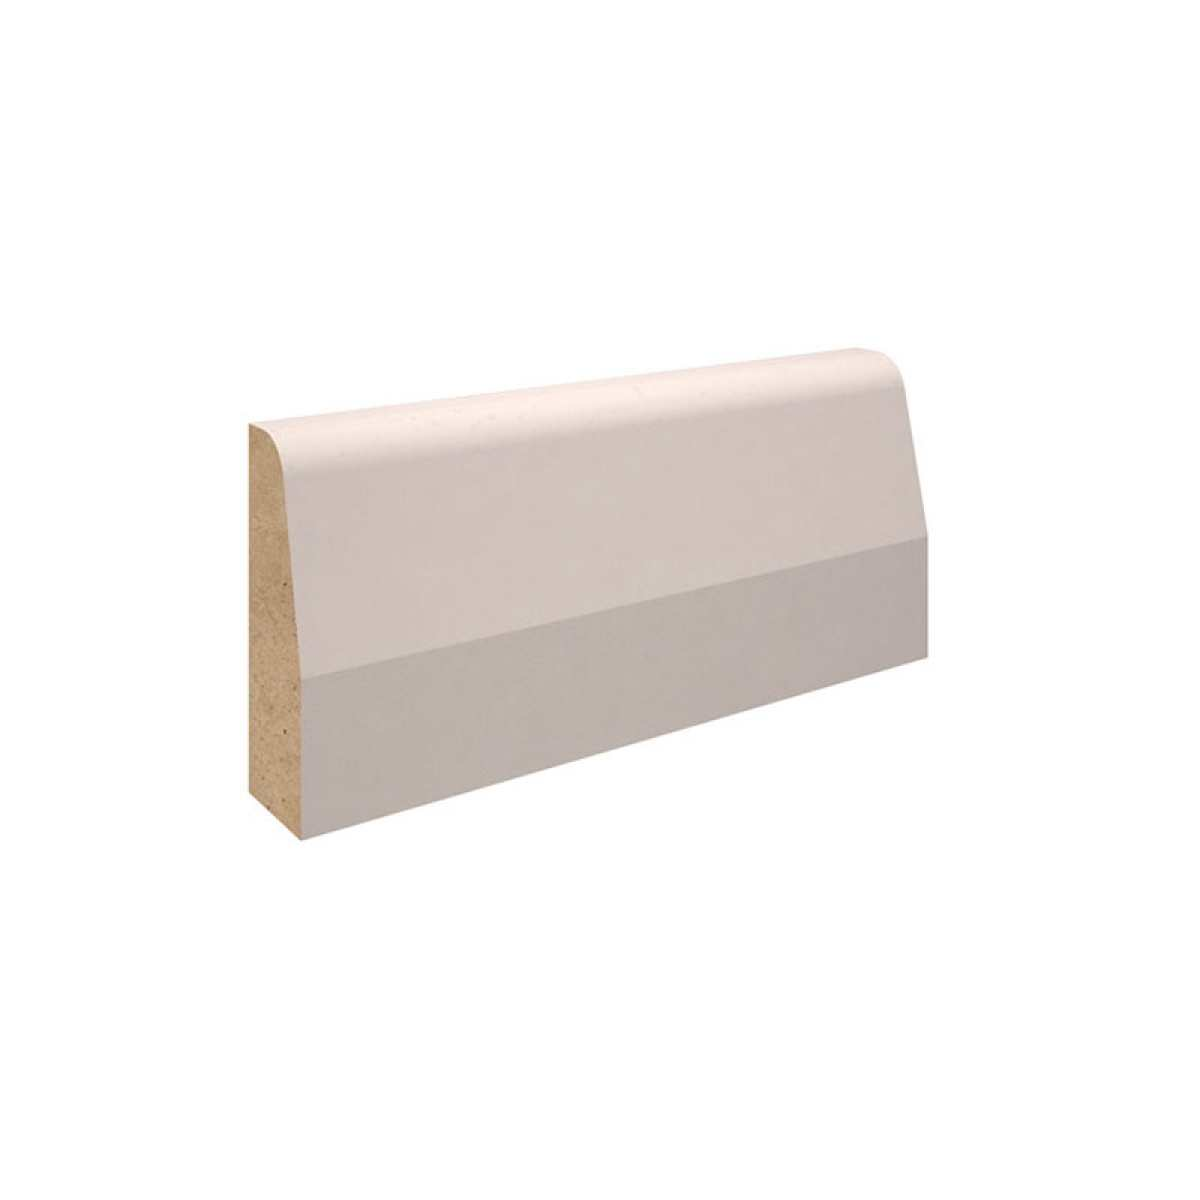 15 x 45 MDF Chamfered skirting board 800px 1 Image by Websters Timber